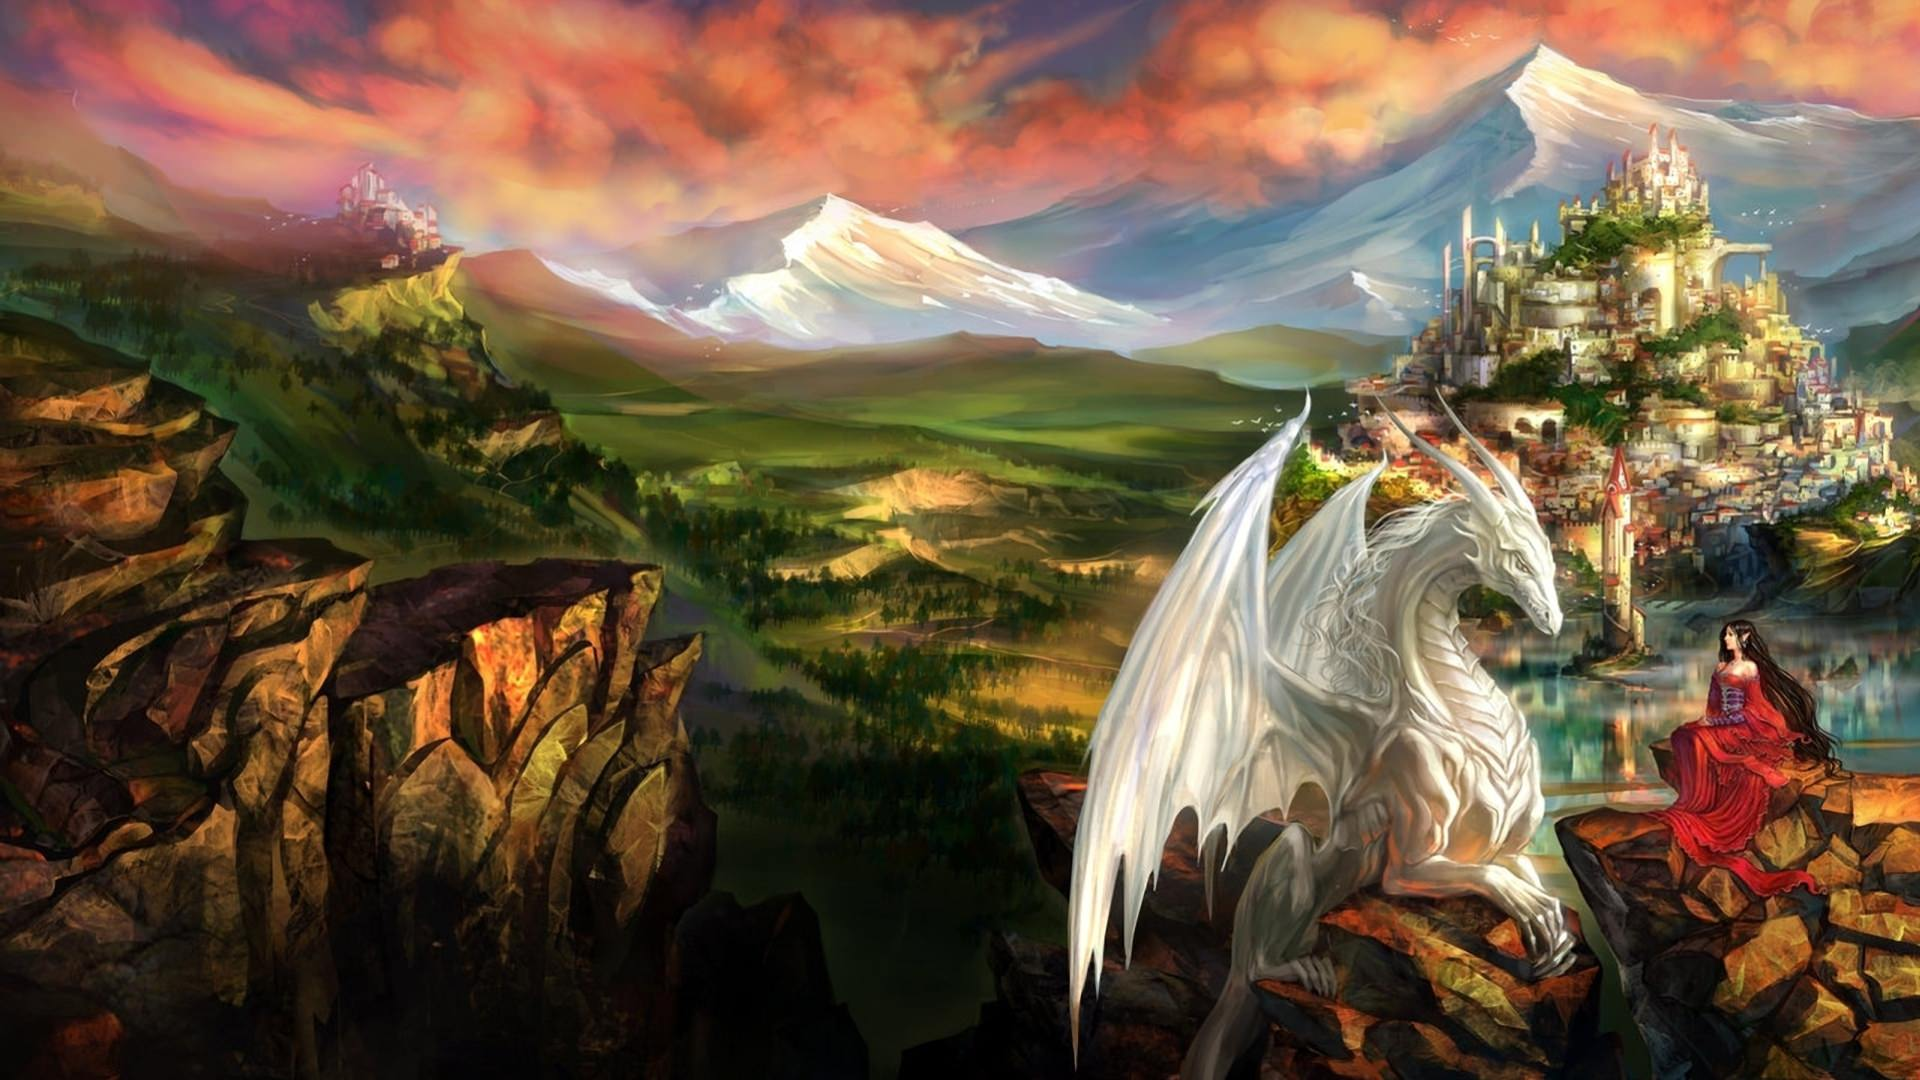 Princess Mountain Landscape with Dragon Wallpaper